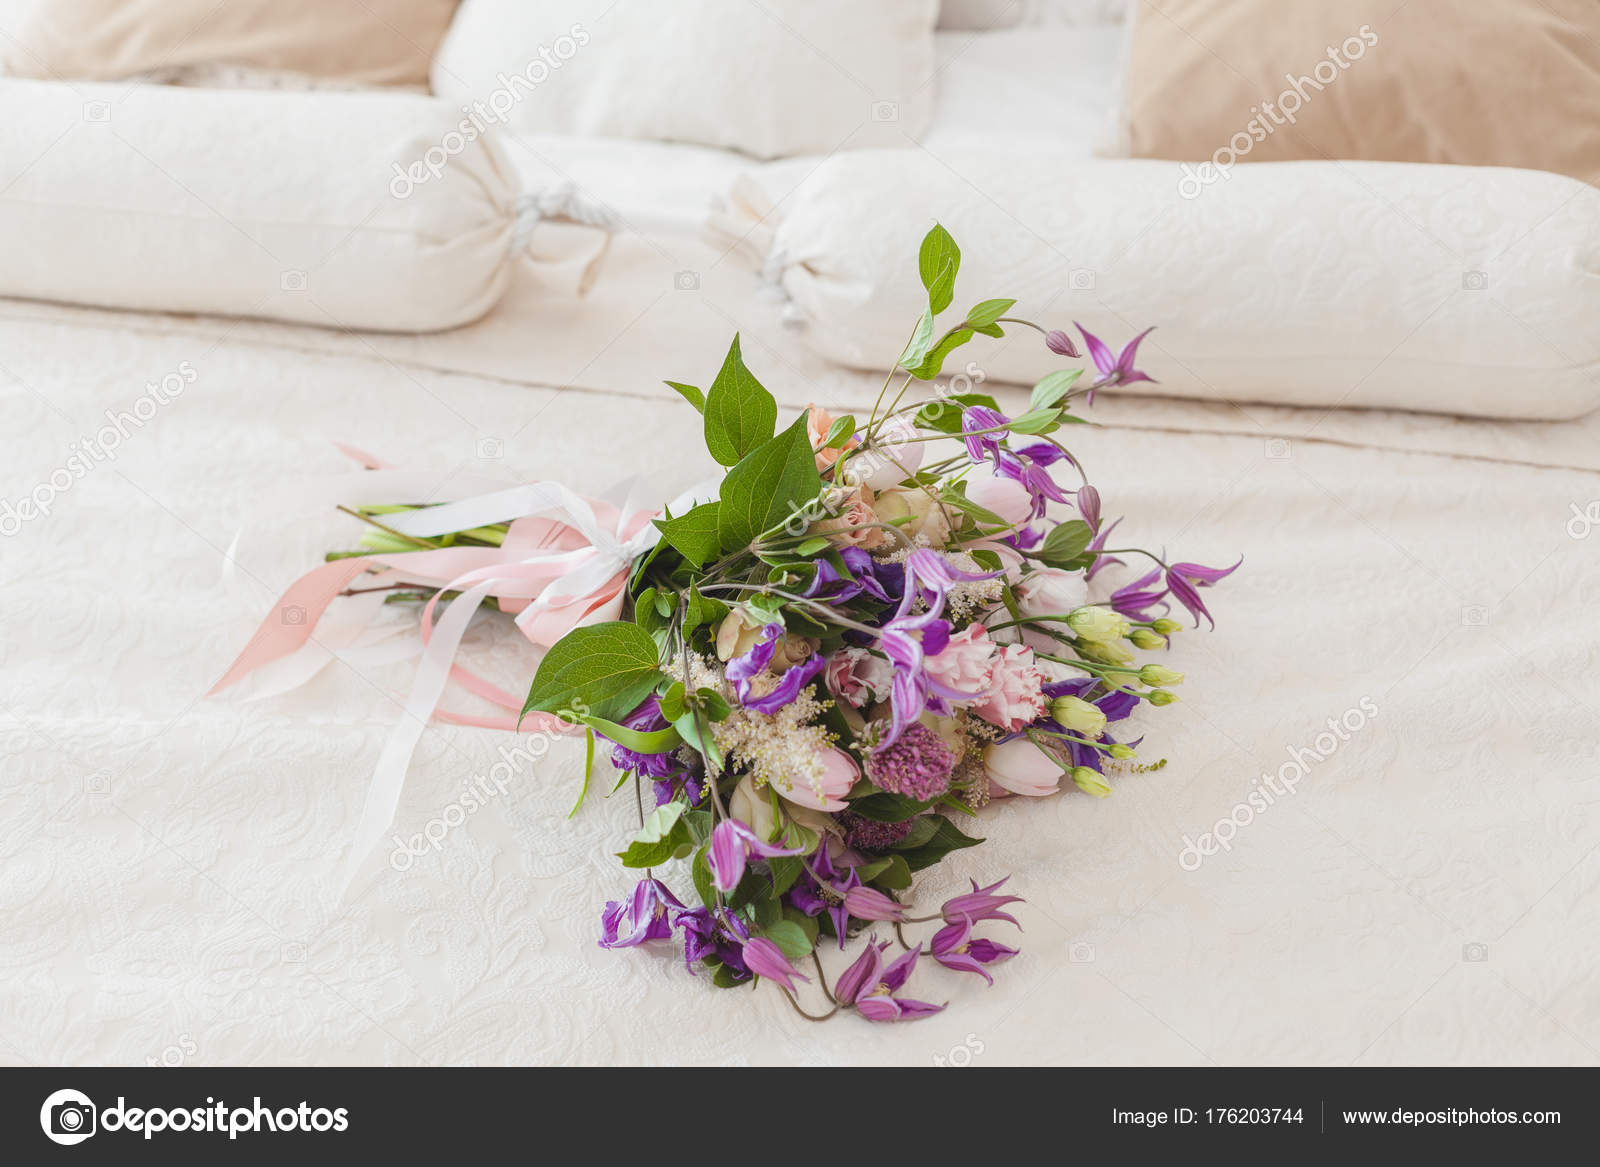 On the bed is a bouquet of flowers. — Stock Photo © kladyk #176203744